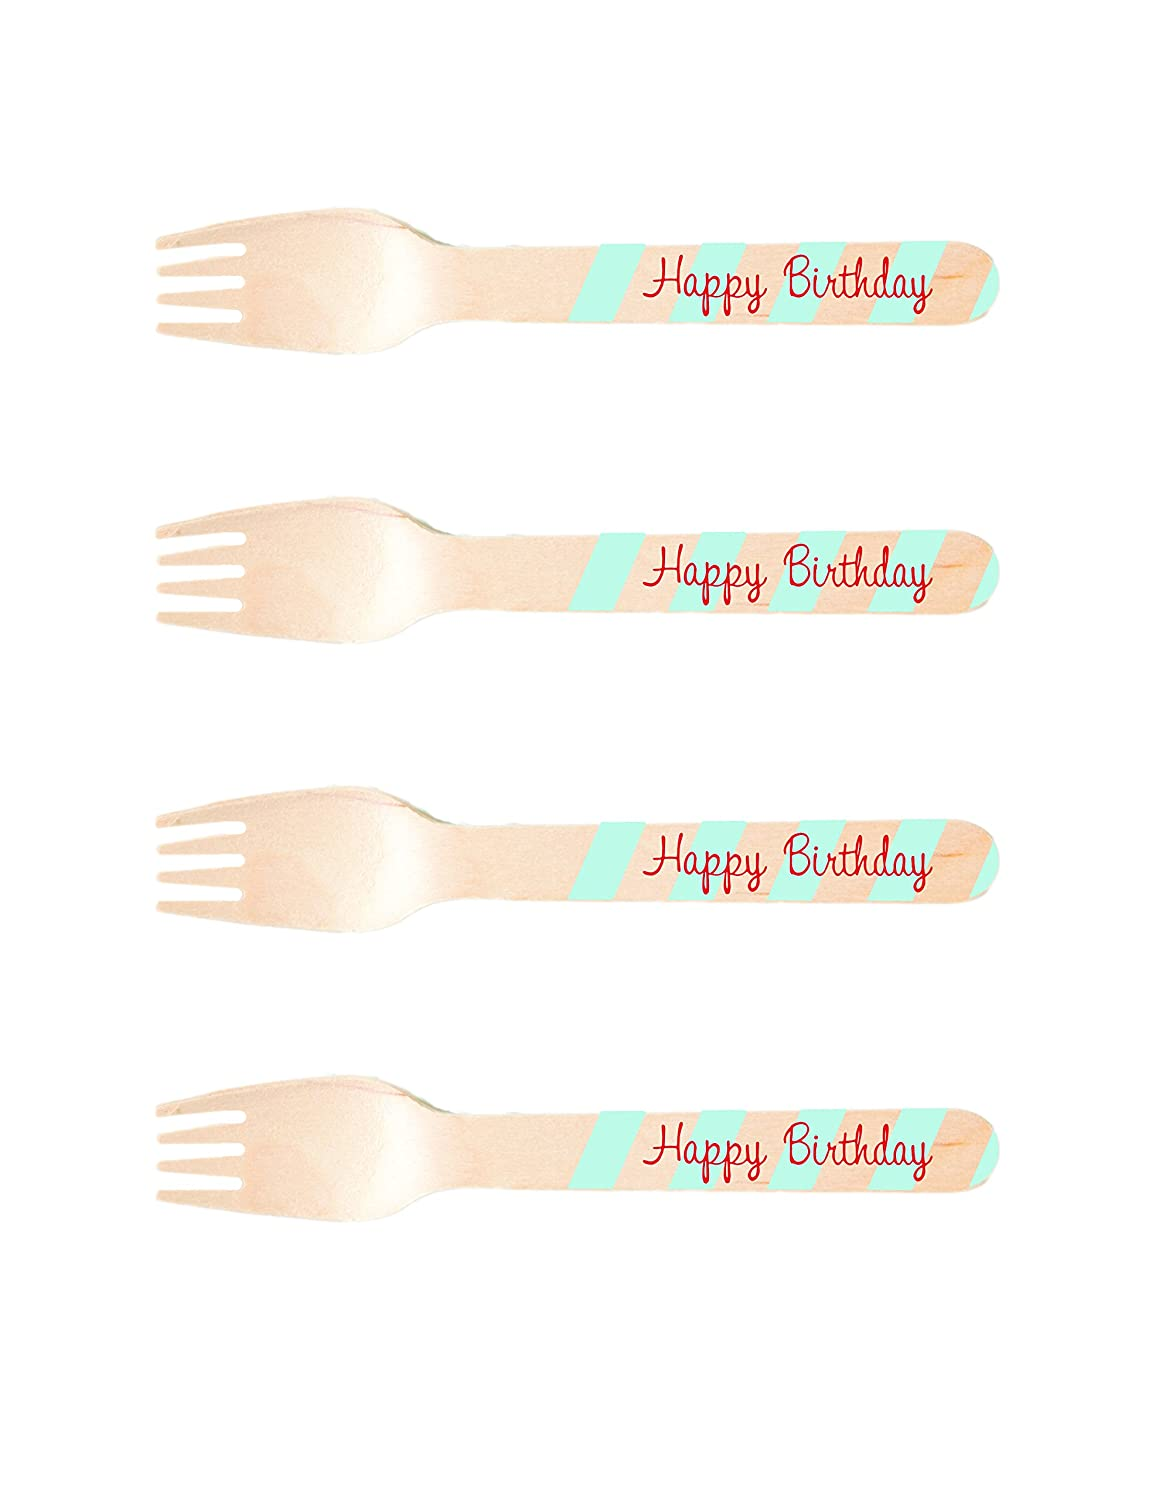 Perfect Stix-Sucre Shop Happy bday-20 Happy Birthday Printed Wooden Forks Blue//Red Pack of 20